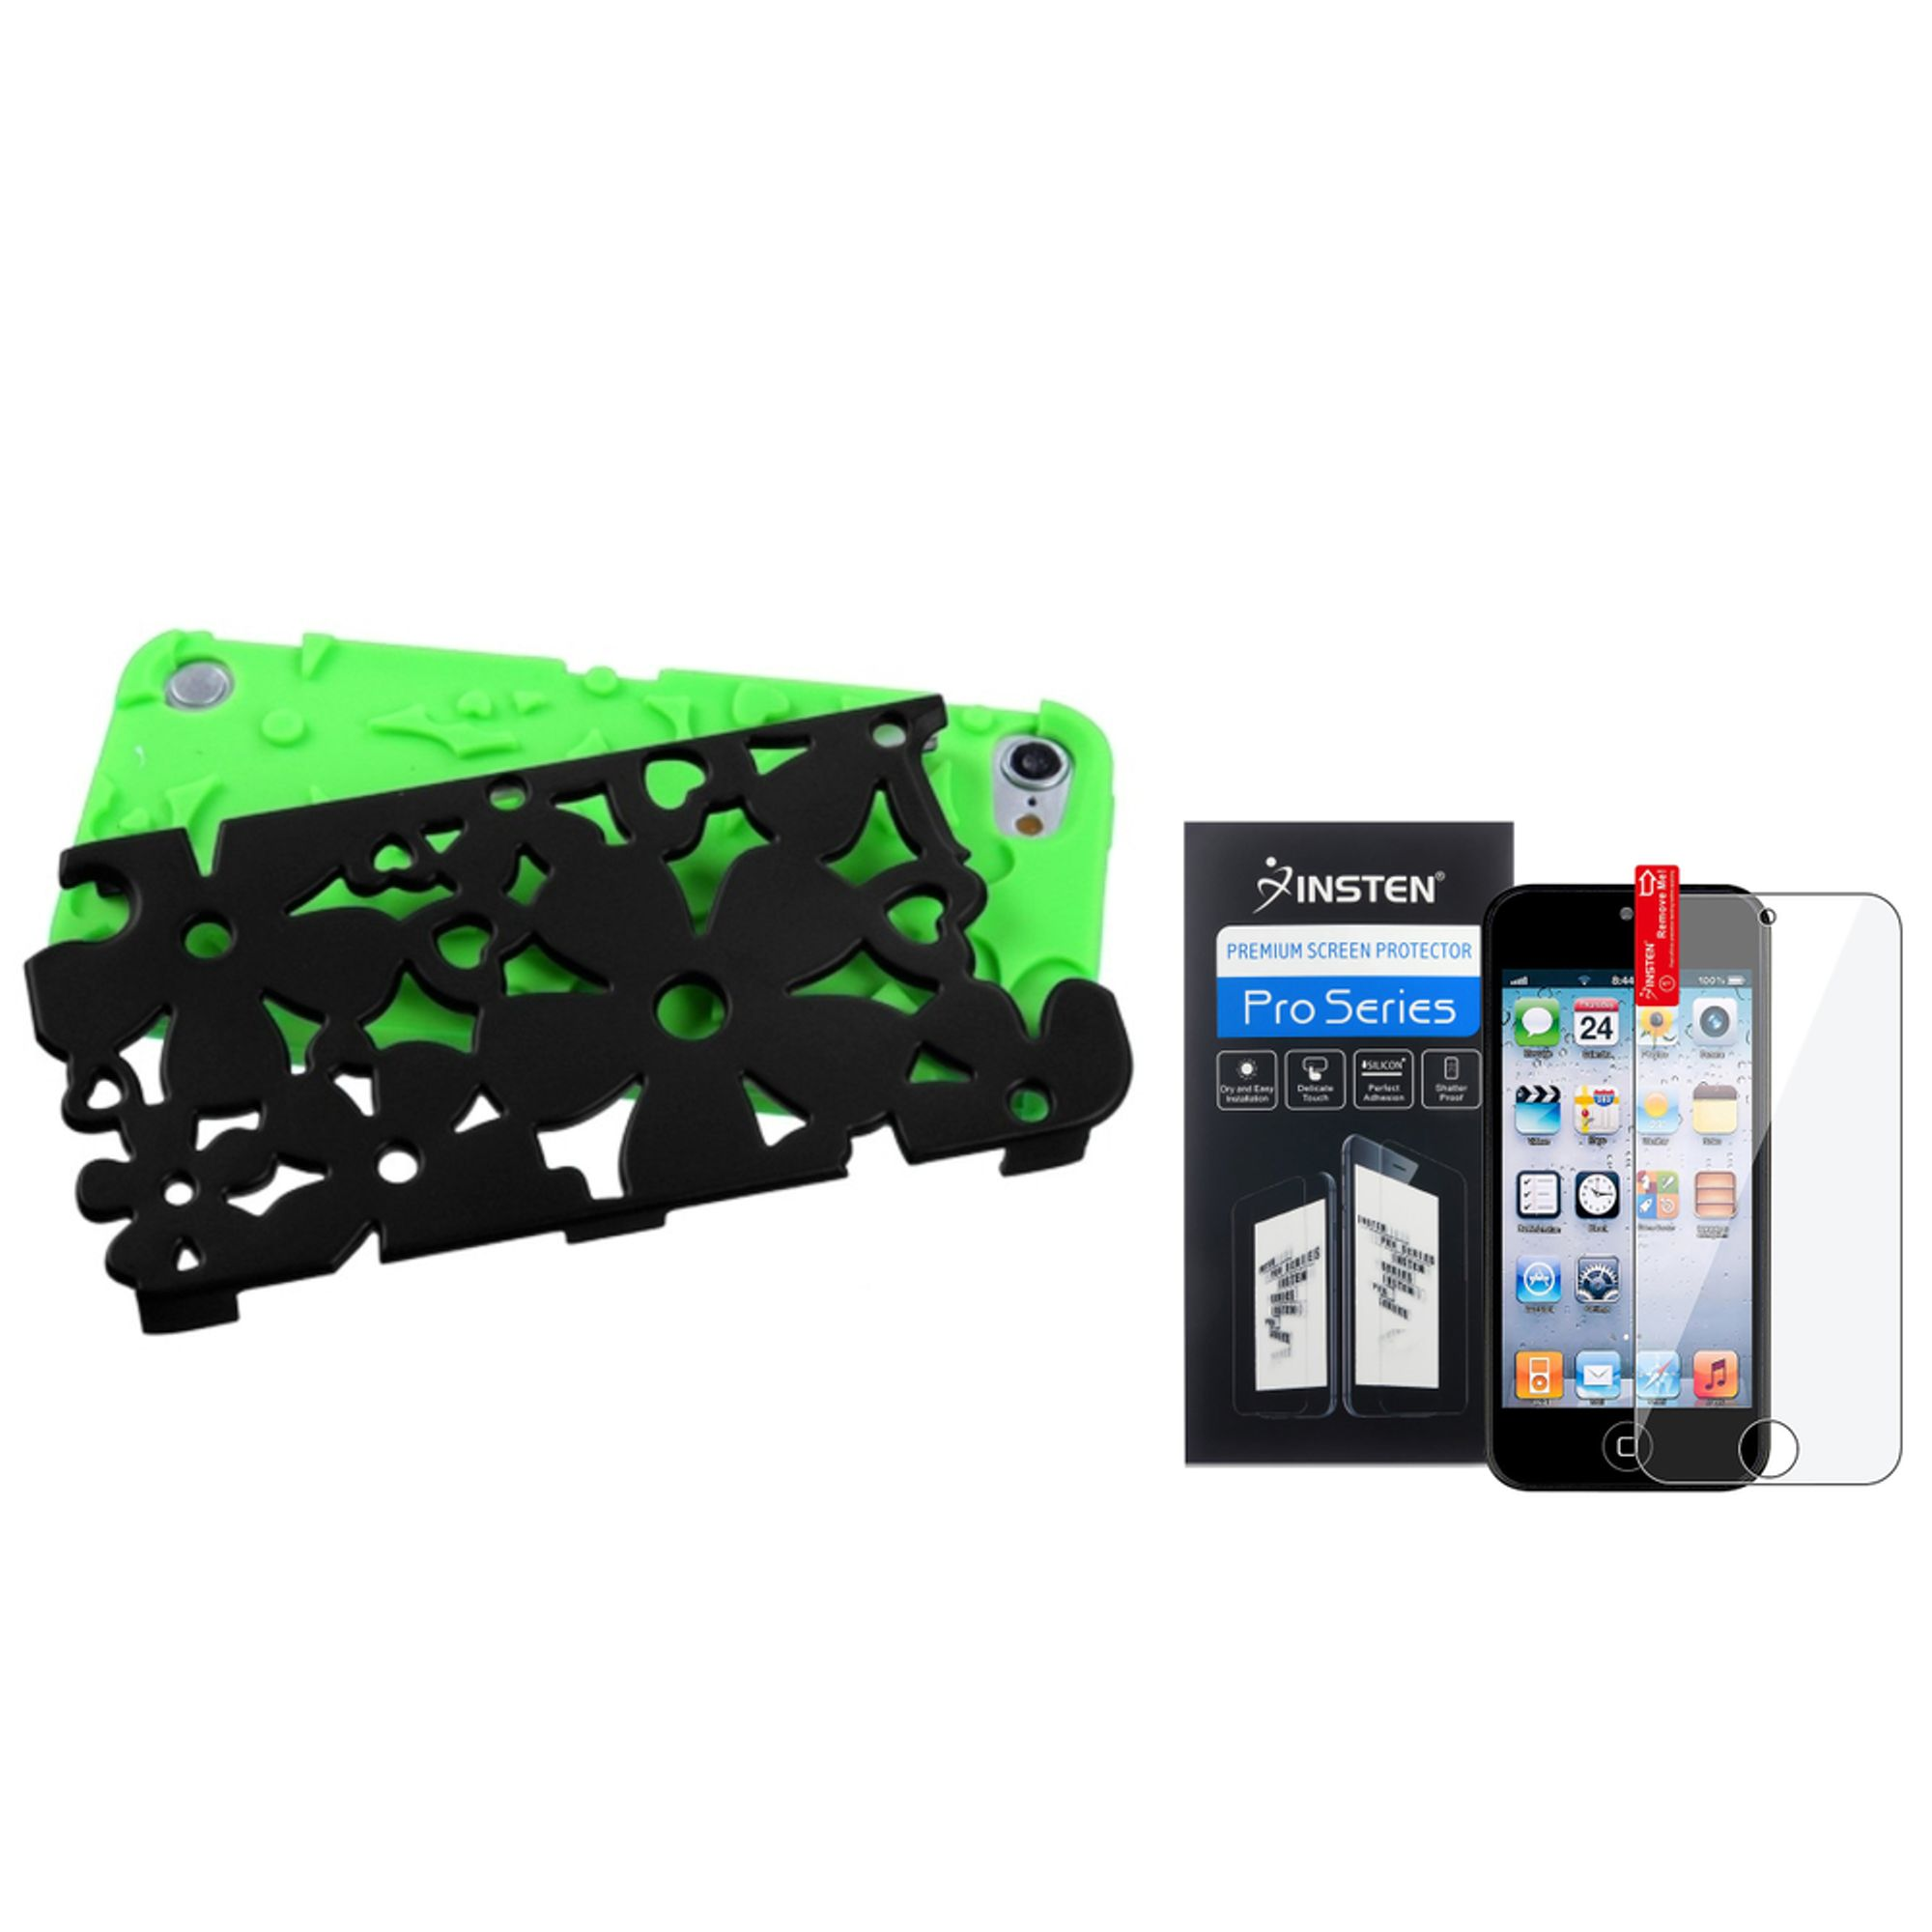 Insten Green Black Flower Dual Layer Hard Soft Case+LCD Film For iPod Touch 6G 6 6th 5G 5 5th Gen